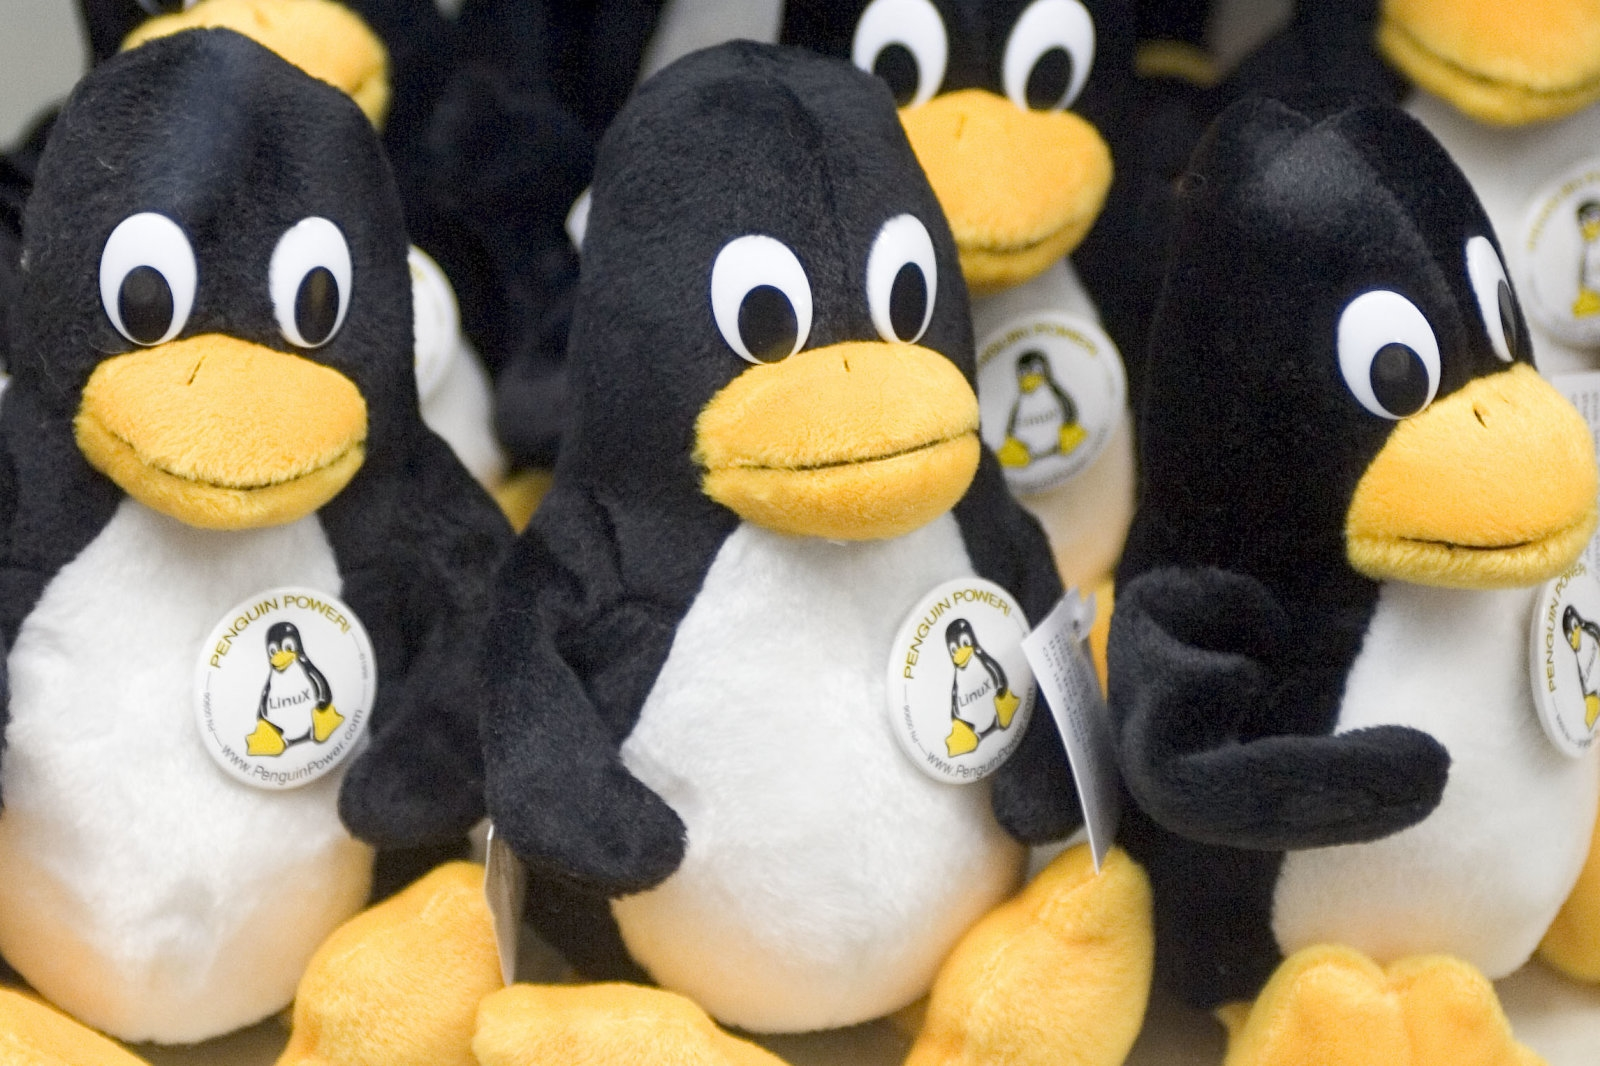 South Korea's government will switch to Linux over cost concerns | DeviceDaily.com